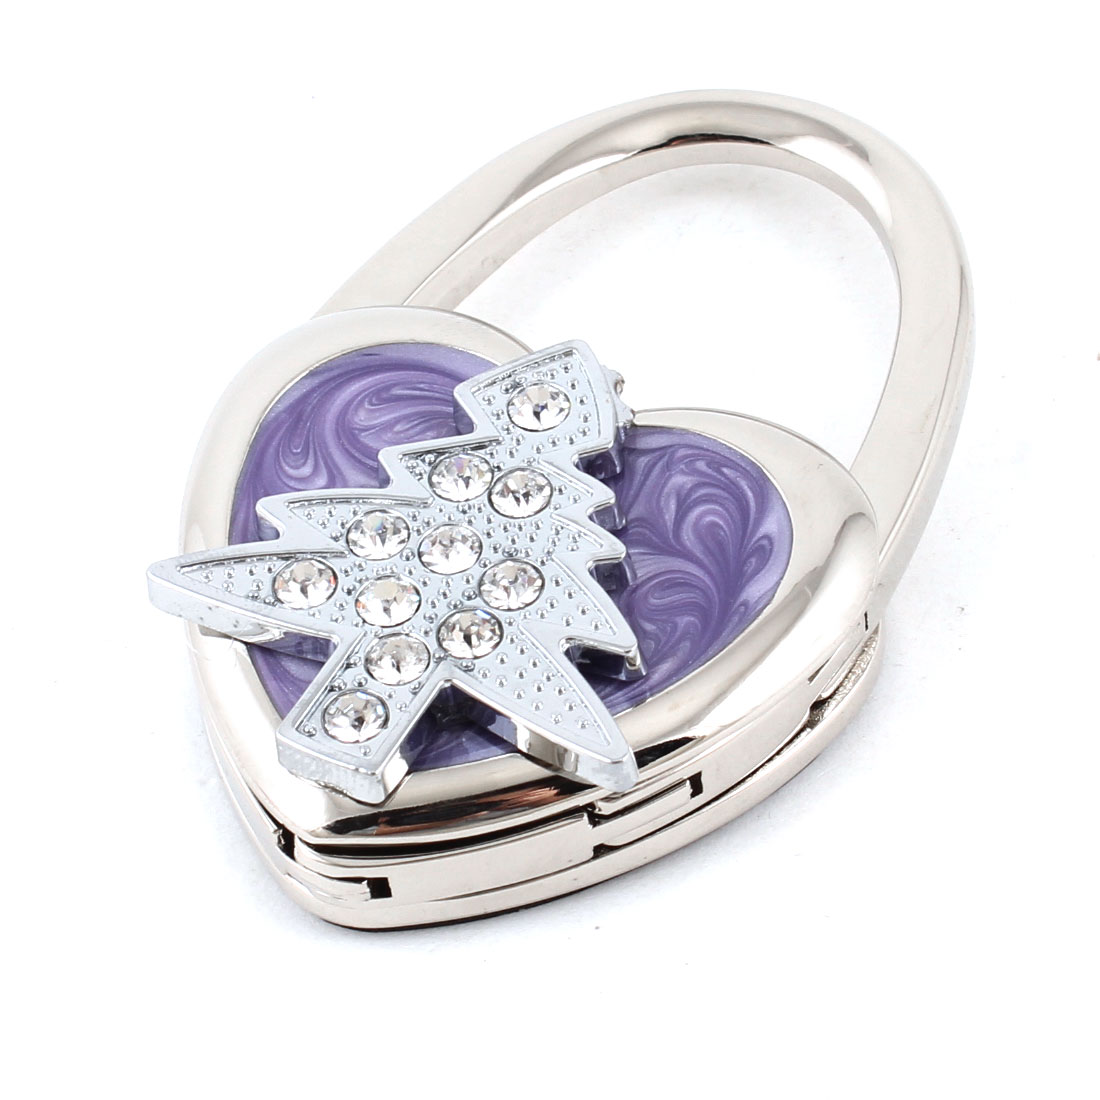 Purple Silver Tone Rhinestones Tree Heart Designed Handbag Foldable Table Hook